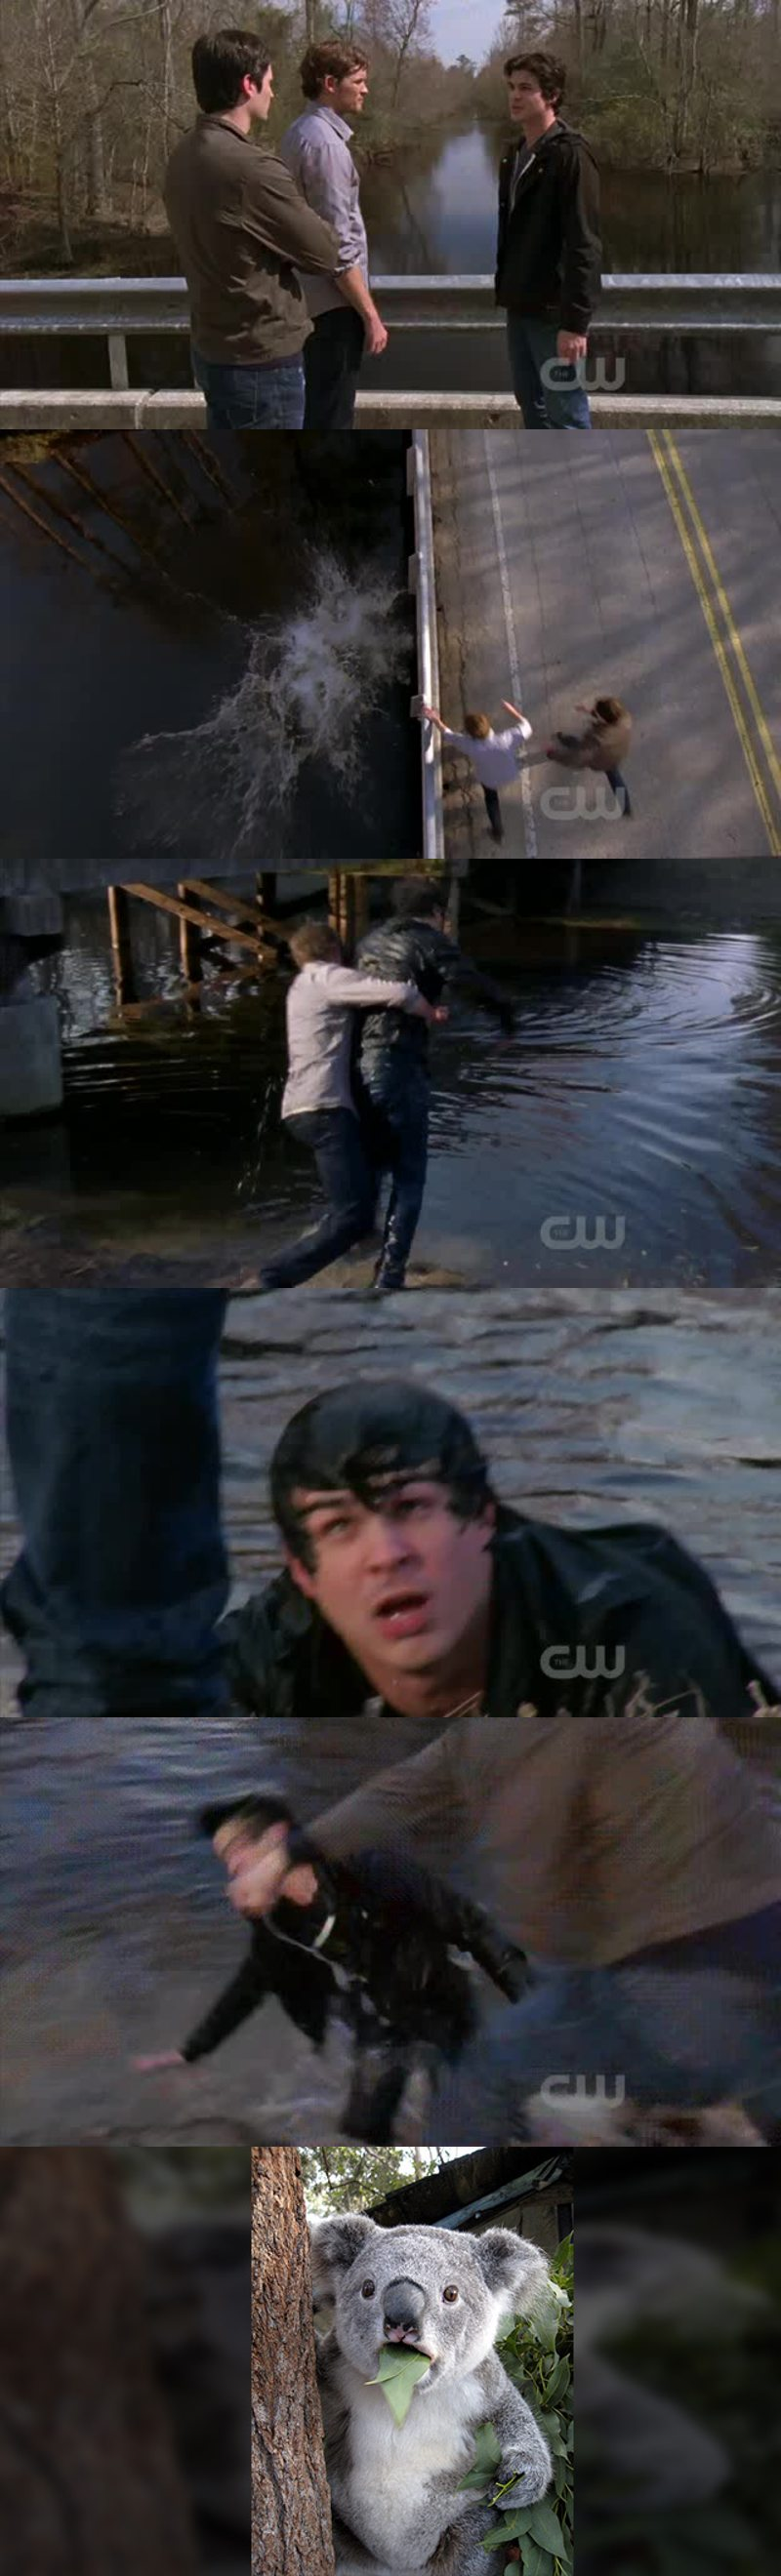 Another step up for S8... It's never too late! The bridge scene was super intense as I didn't think they were literally going to jump Ian in the fricking river! The writing was clever throughout the episode in the relaxed tone that has become a trademark for this season. And congrats to Brooke and Julian, if there was going to be one more pregnancy storyline, I'm glad it's them.